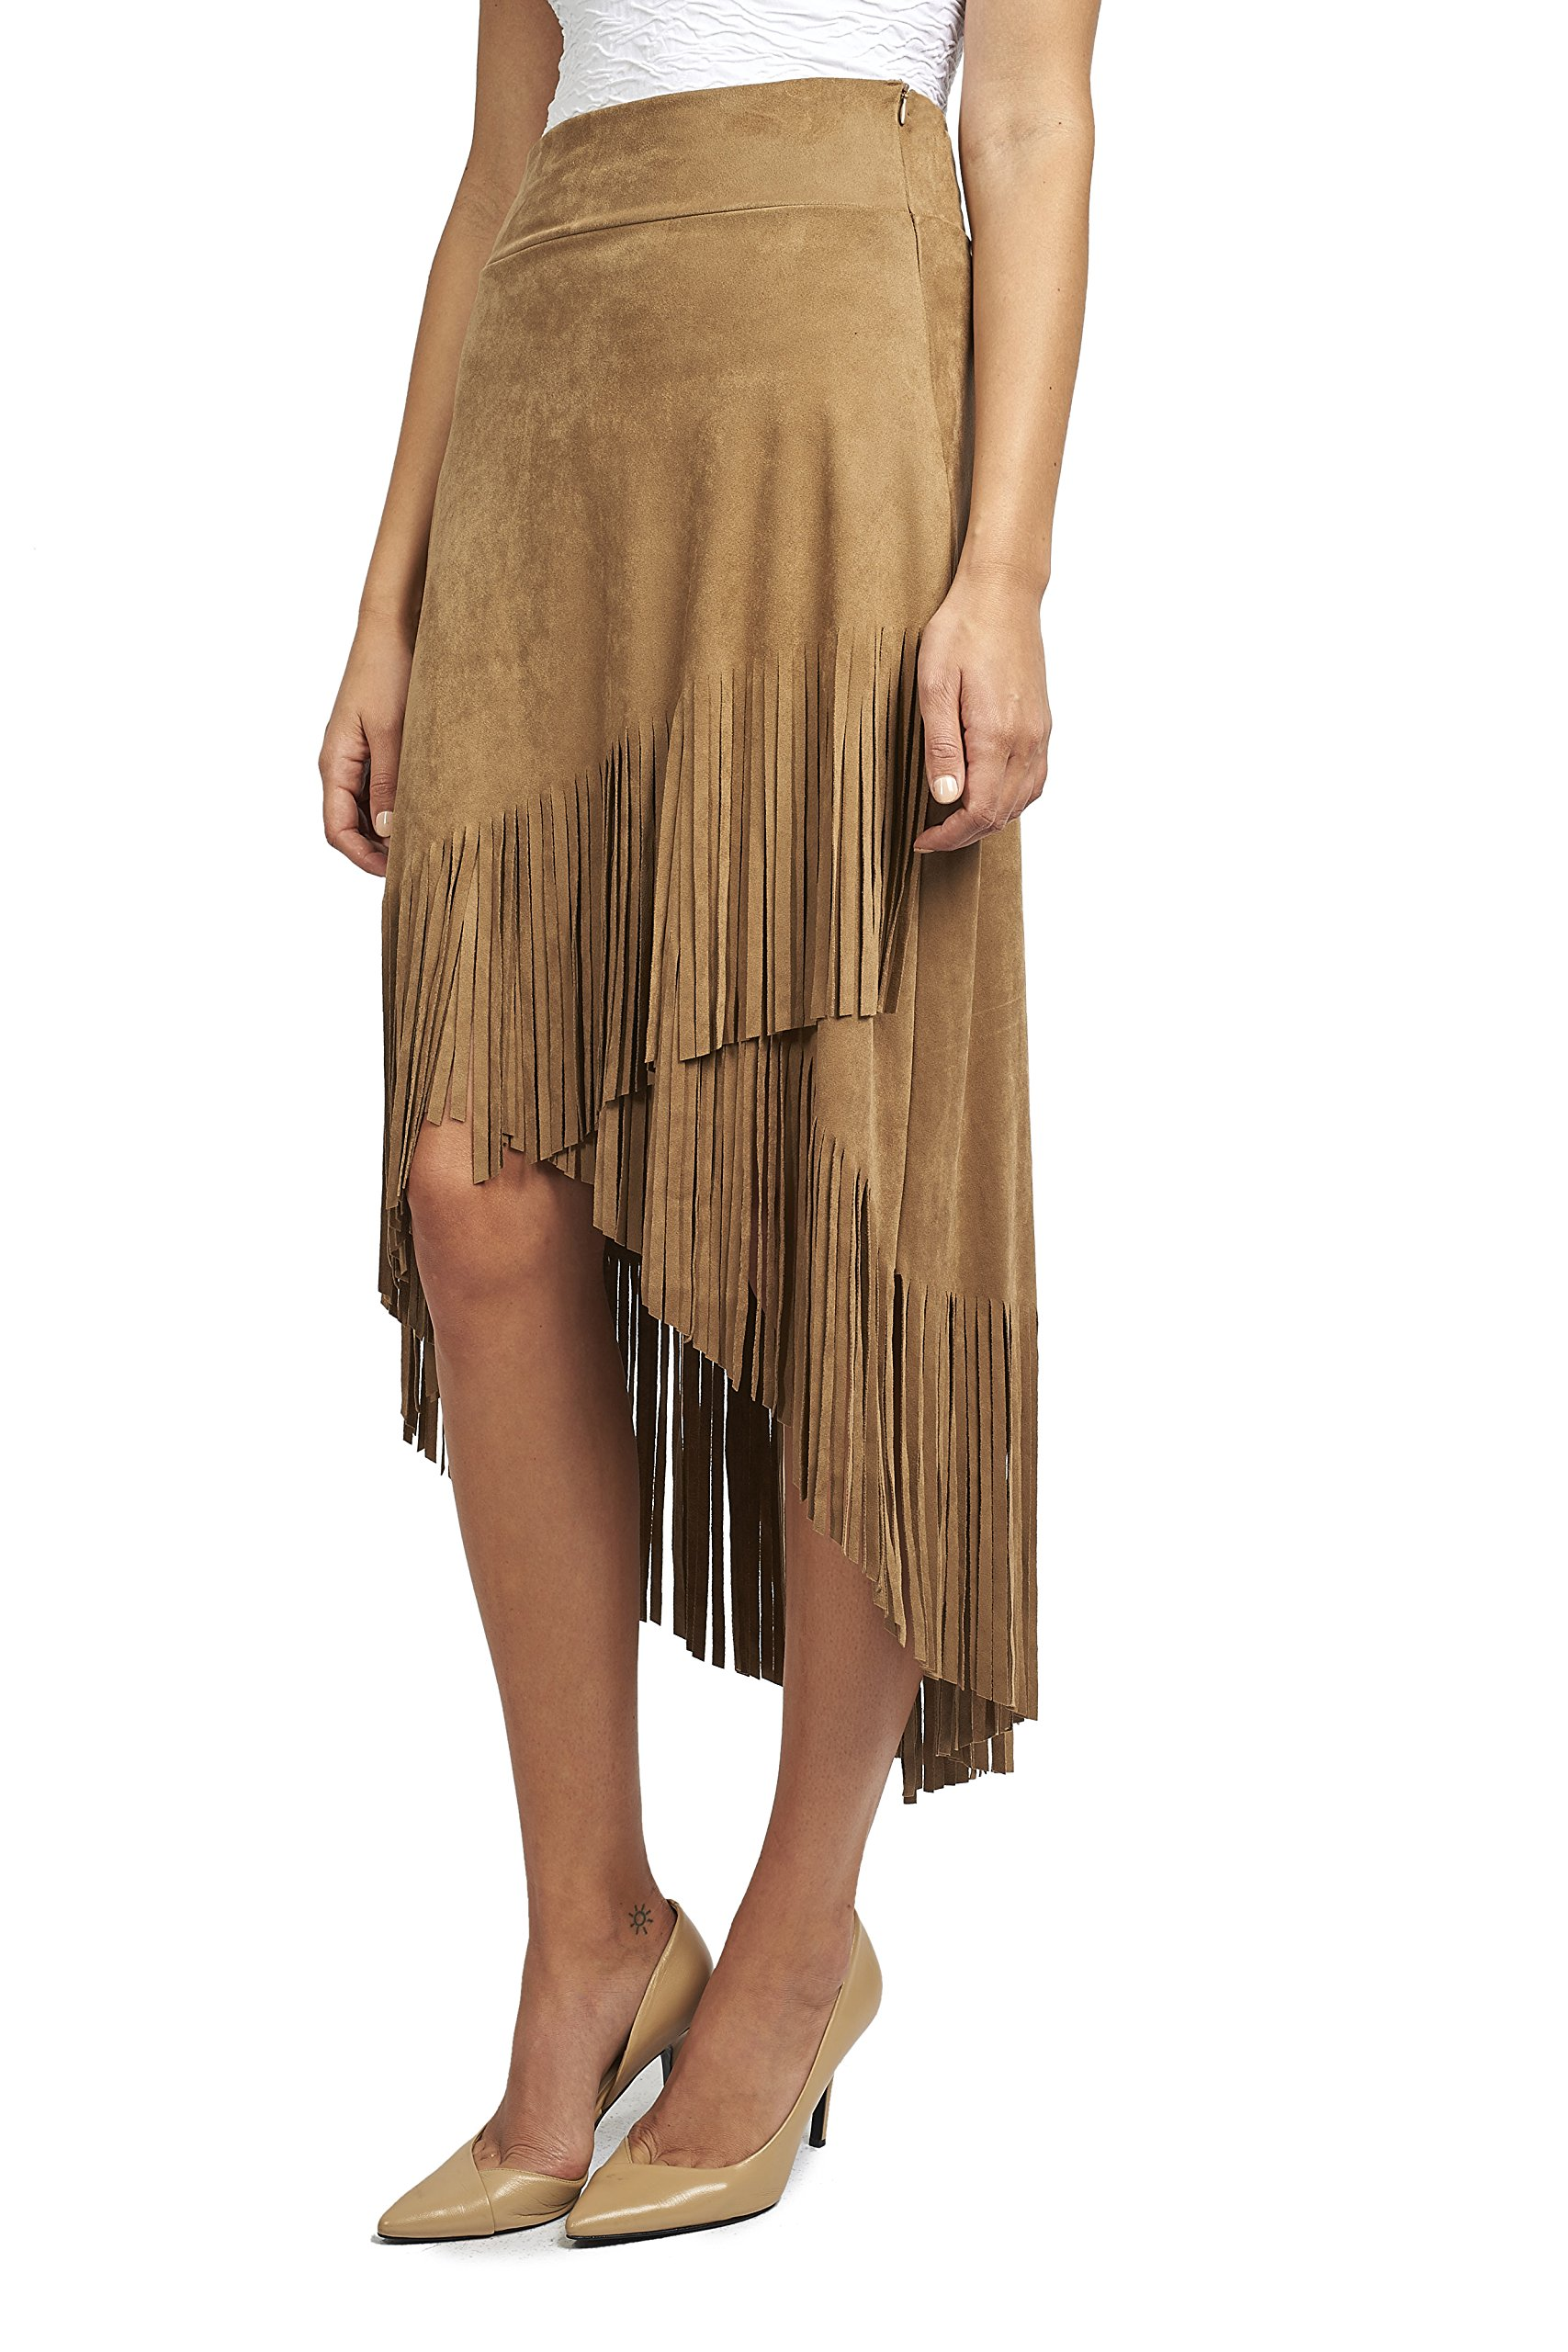 Joseph Ribkoff Faux Suede Asymmetric Skirt with Fringe Style 171388 - Size 14 by Joseph Ribkoff